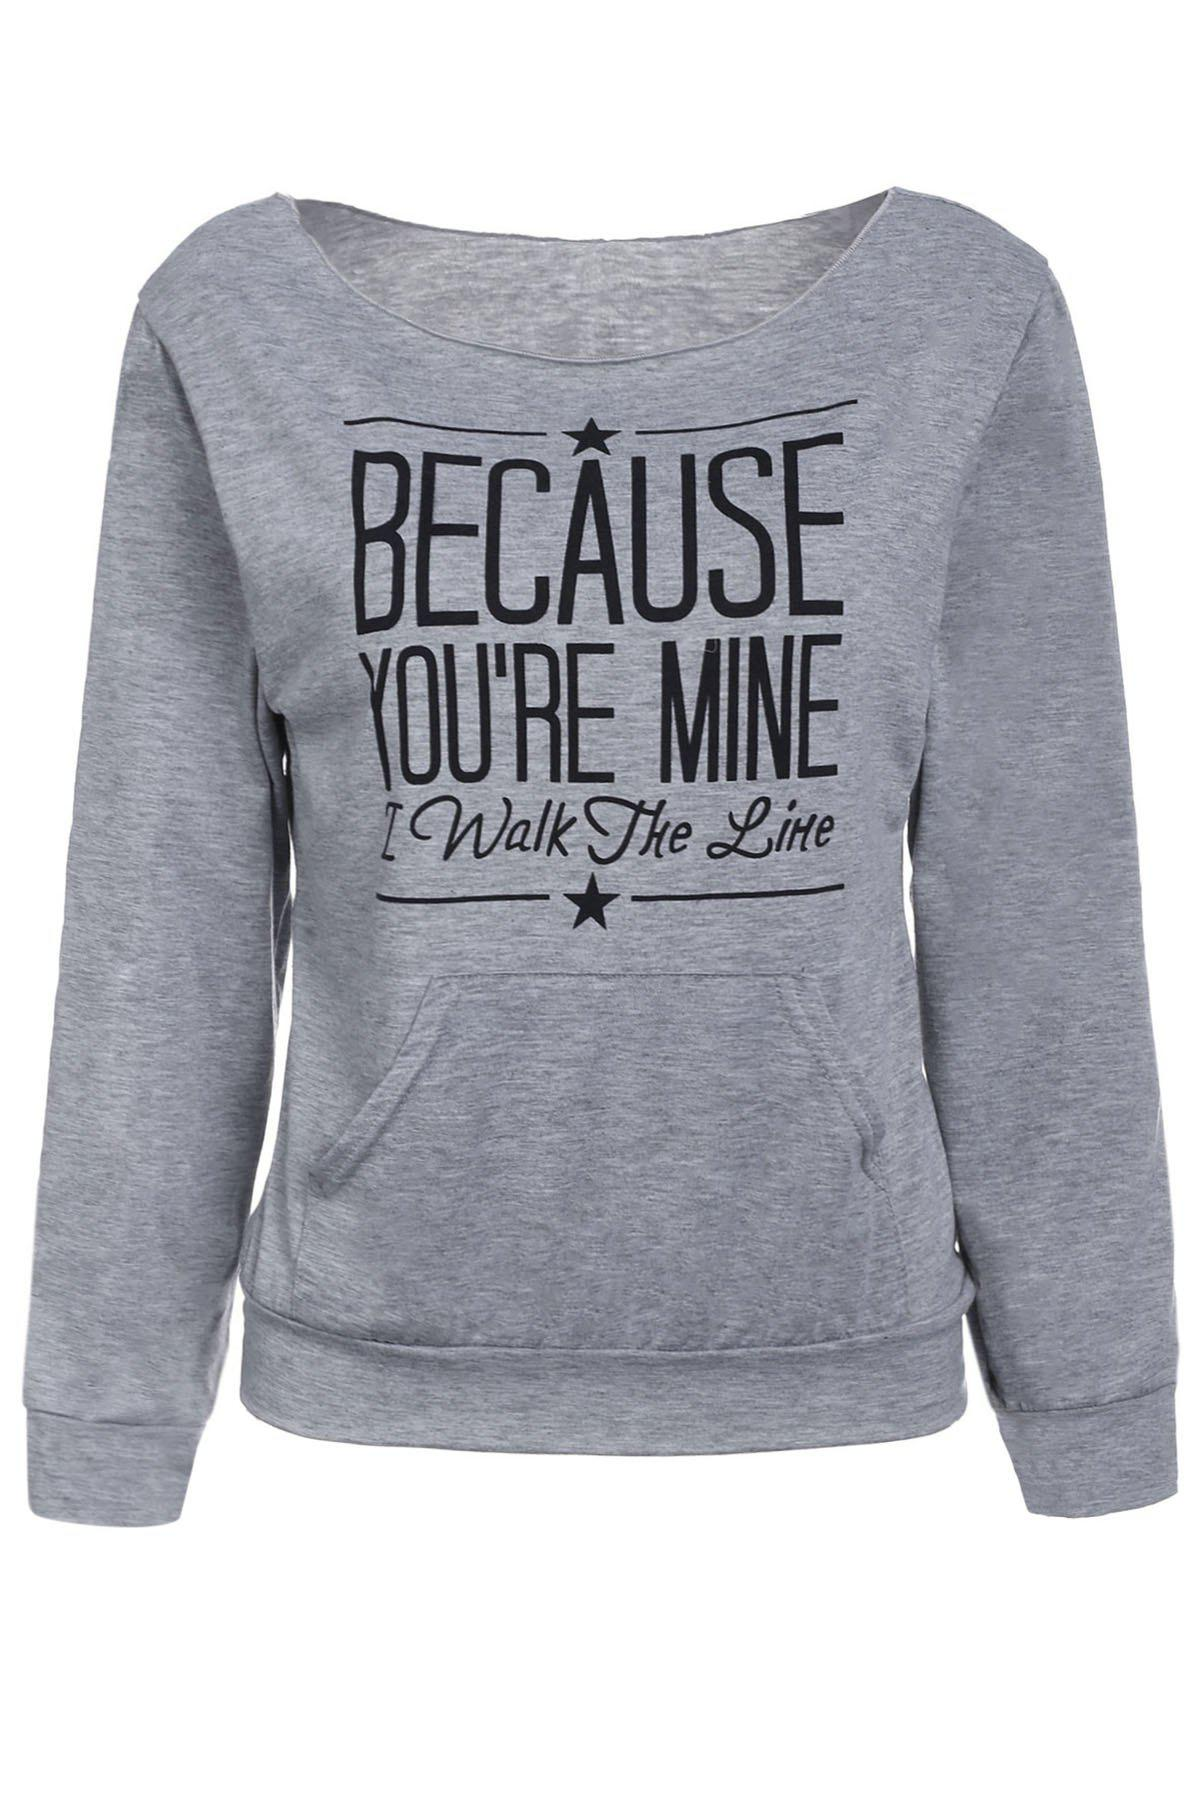 Casual Style Long Sleeve Scoop Neck Letter Print Women's T-Shirt - GRAY L